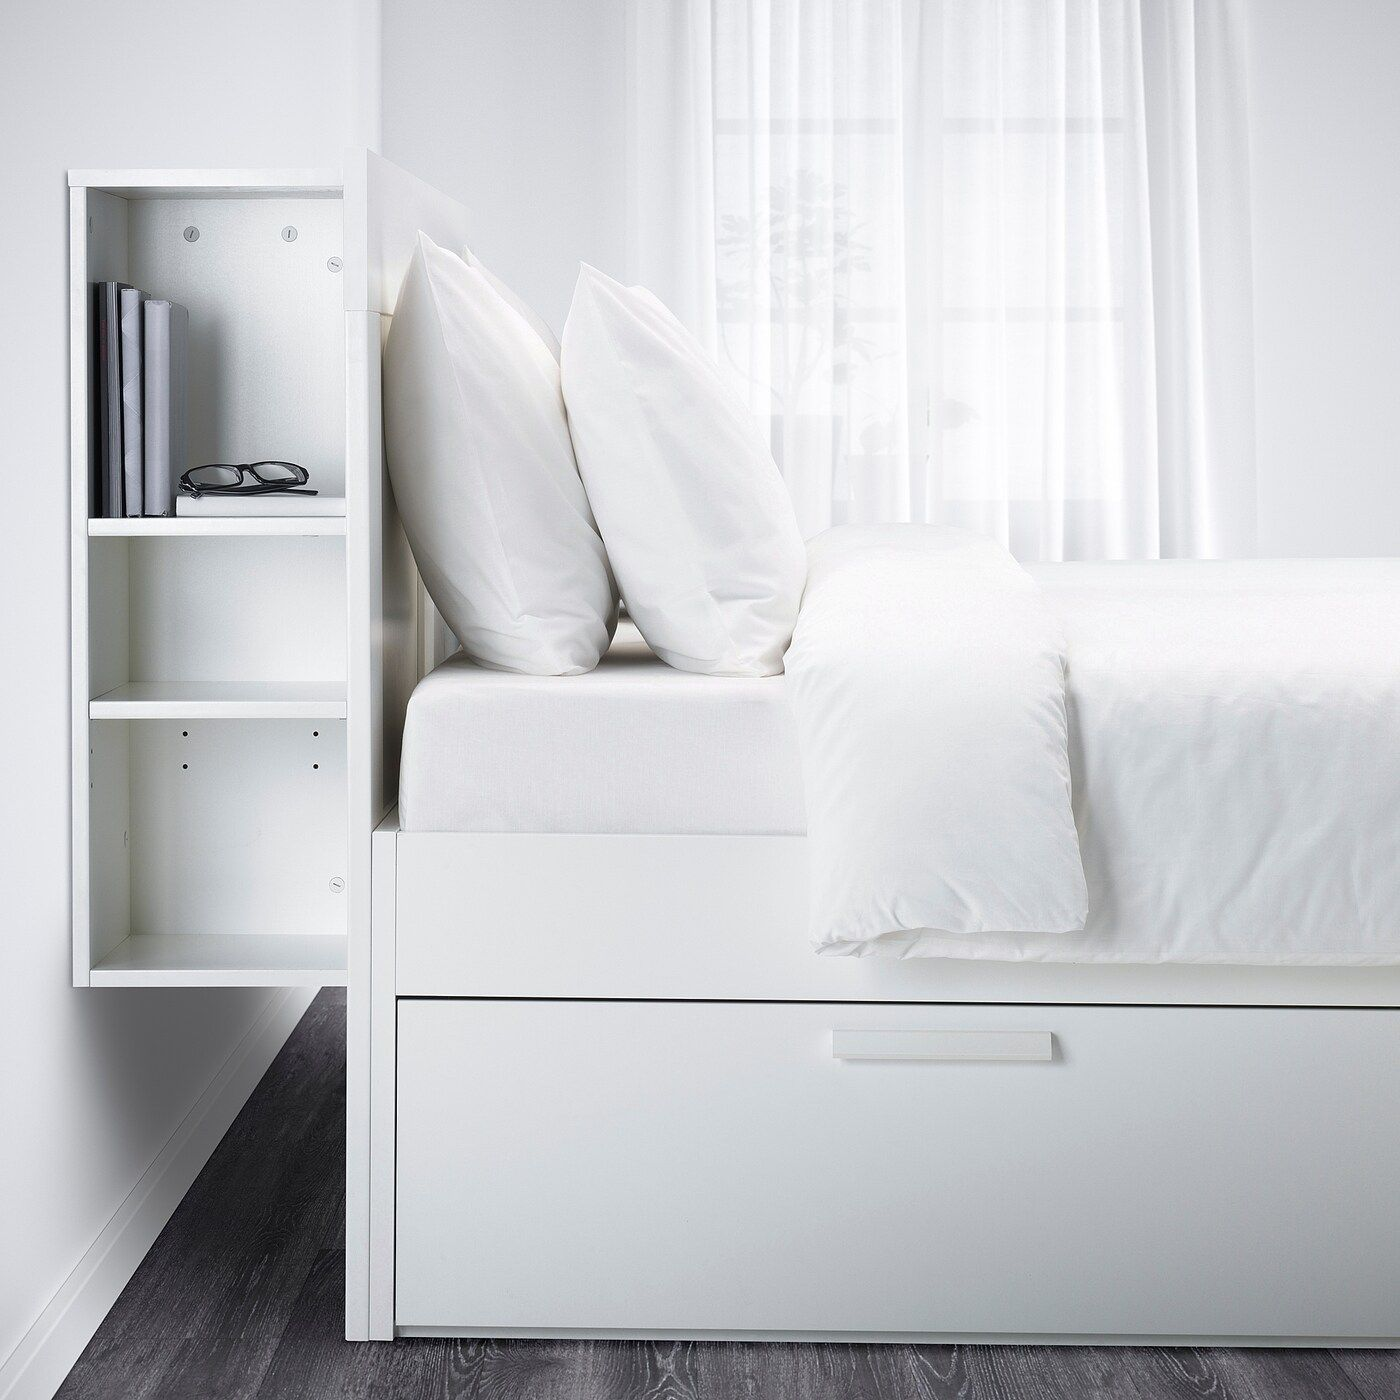 Ikea Brimnes White Luroy Bed Frame With Storage Headboard In 2020 Bed Frame With Storage Headboard Storage White Headboard